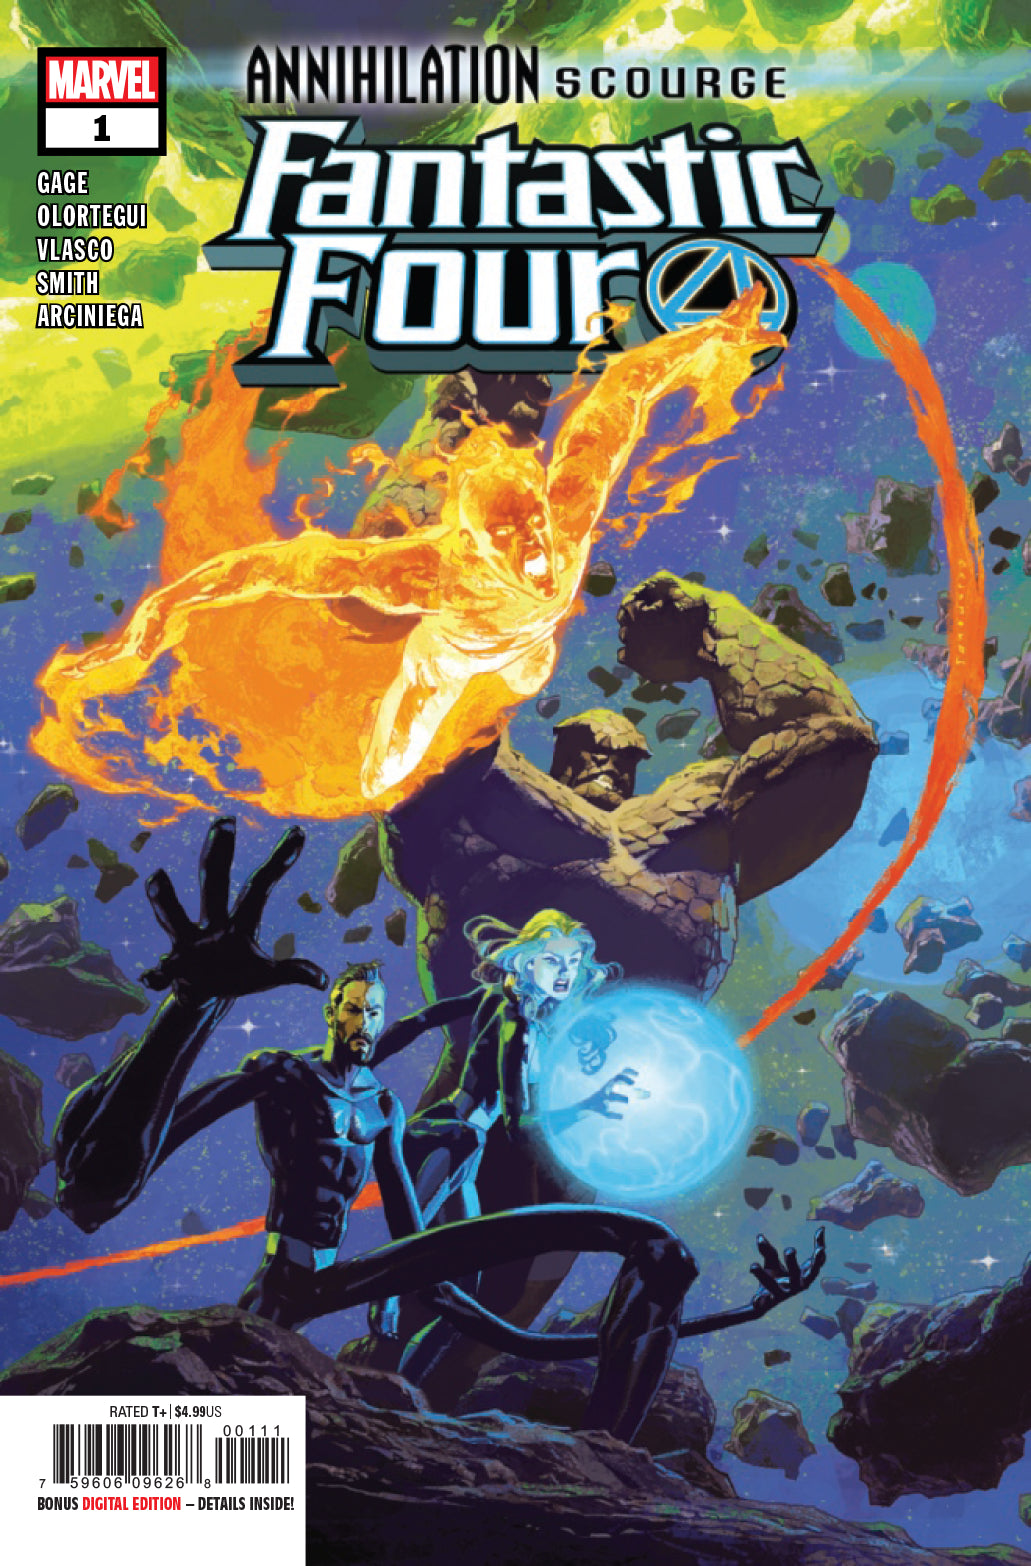 ANNIHILATION SCOURGE FANTASTIC FOUR #1 - 2 Geeks Comics